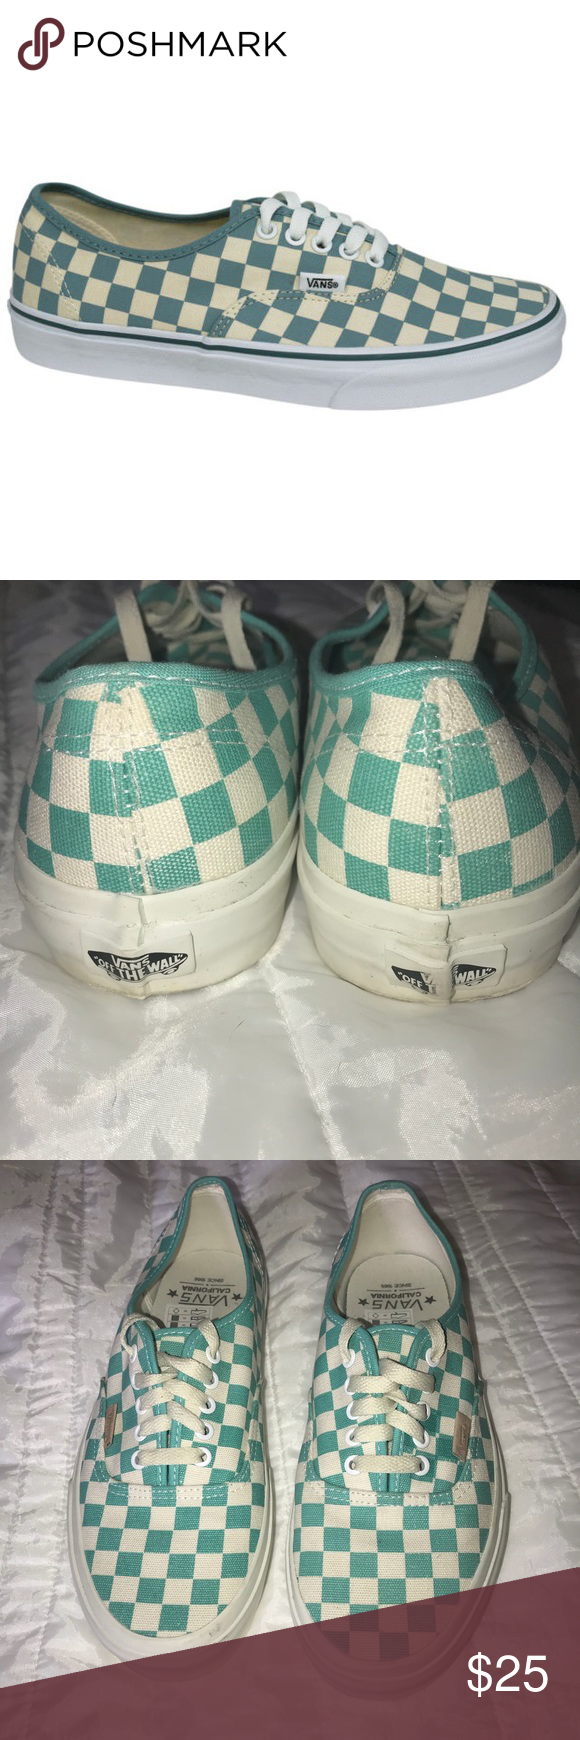 6bfd0f26ac9 Unisex Checkerboard Vans Green Teal Aqua M9.5 W11 Very good condition Vans.  Classic checkerboard and lace up. These were worn as men s